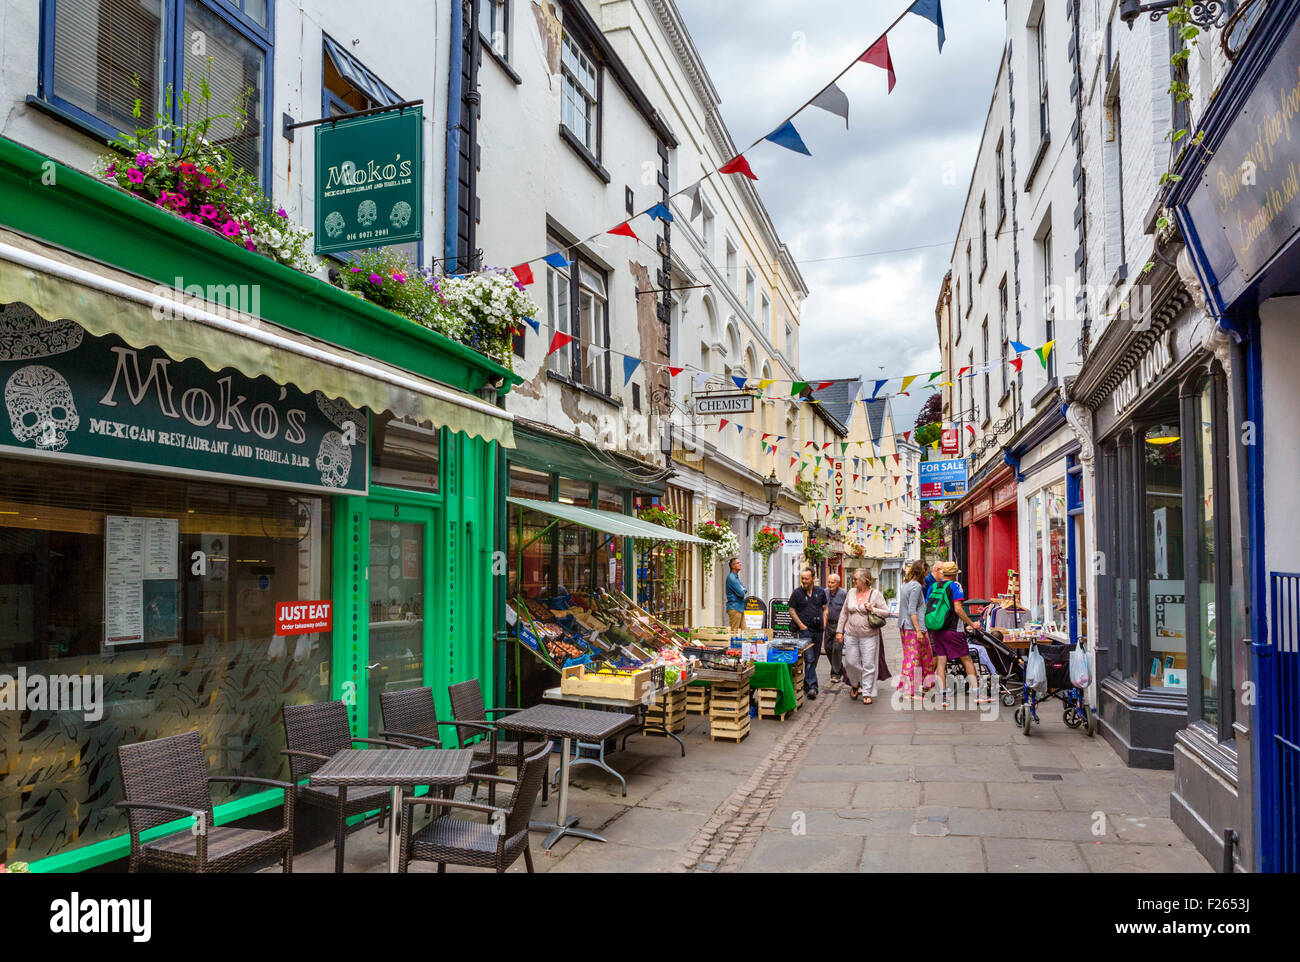 Cardiff Restaurants And Cafes